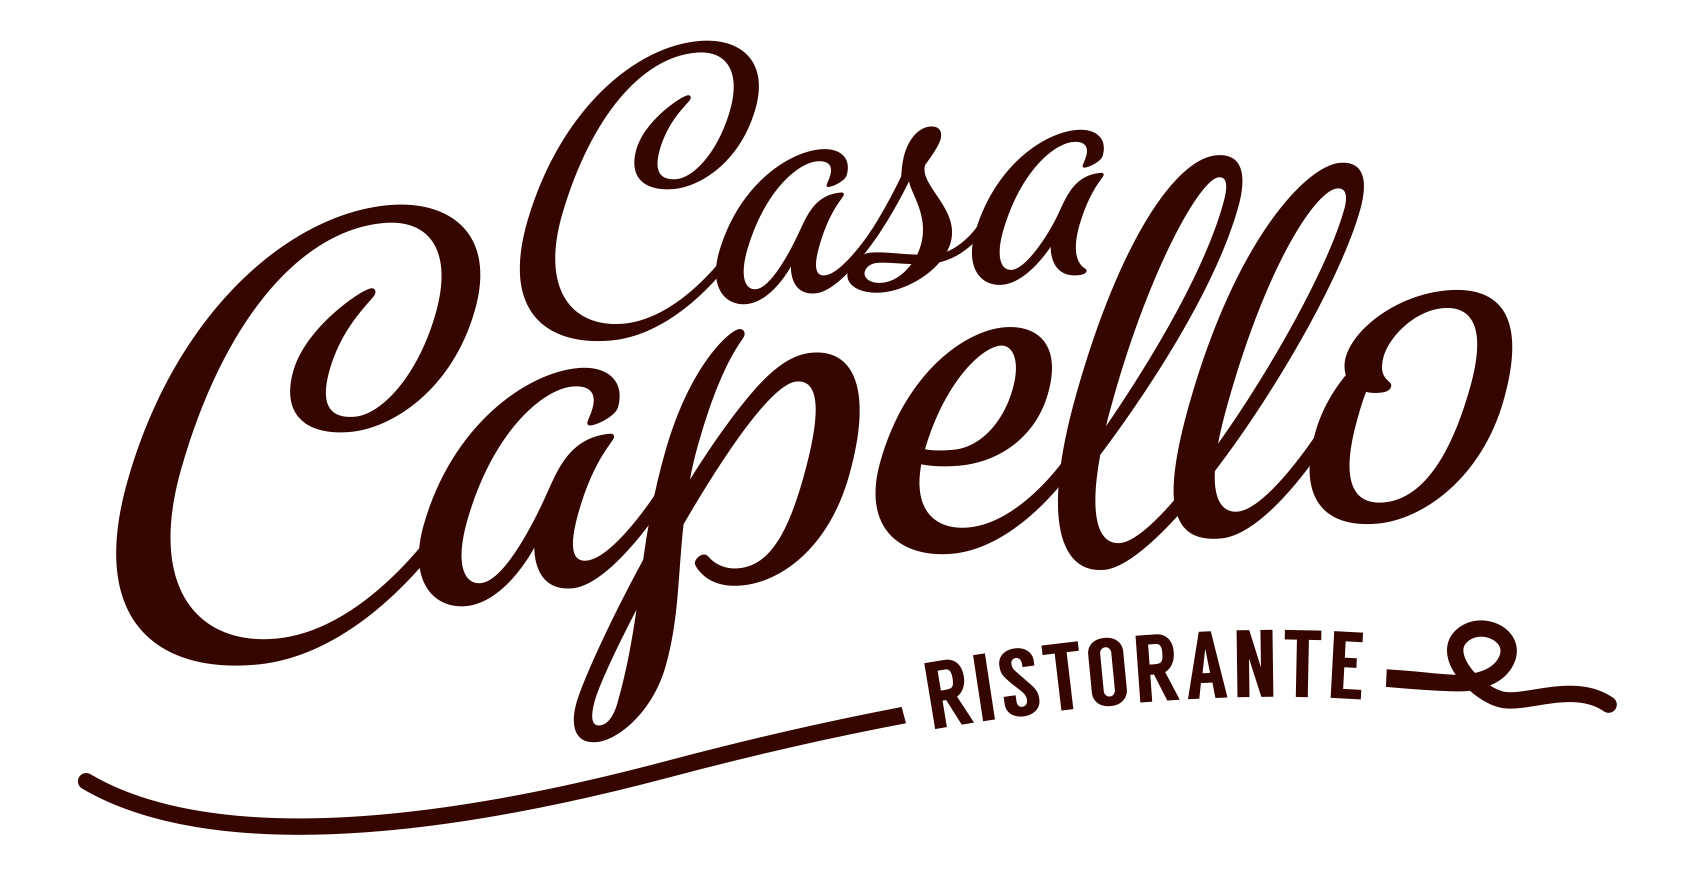 casacapello-logo-donkerkopie.png